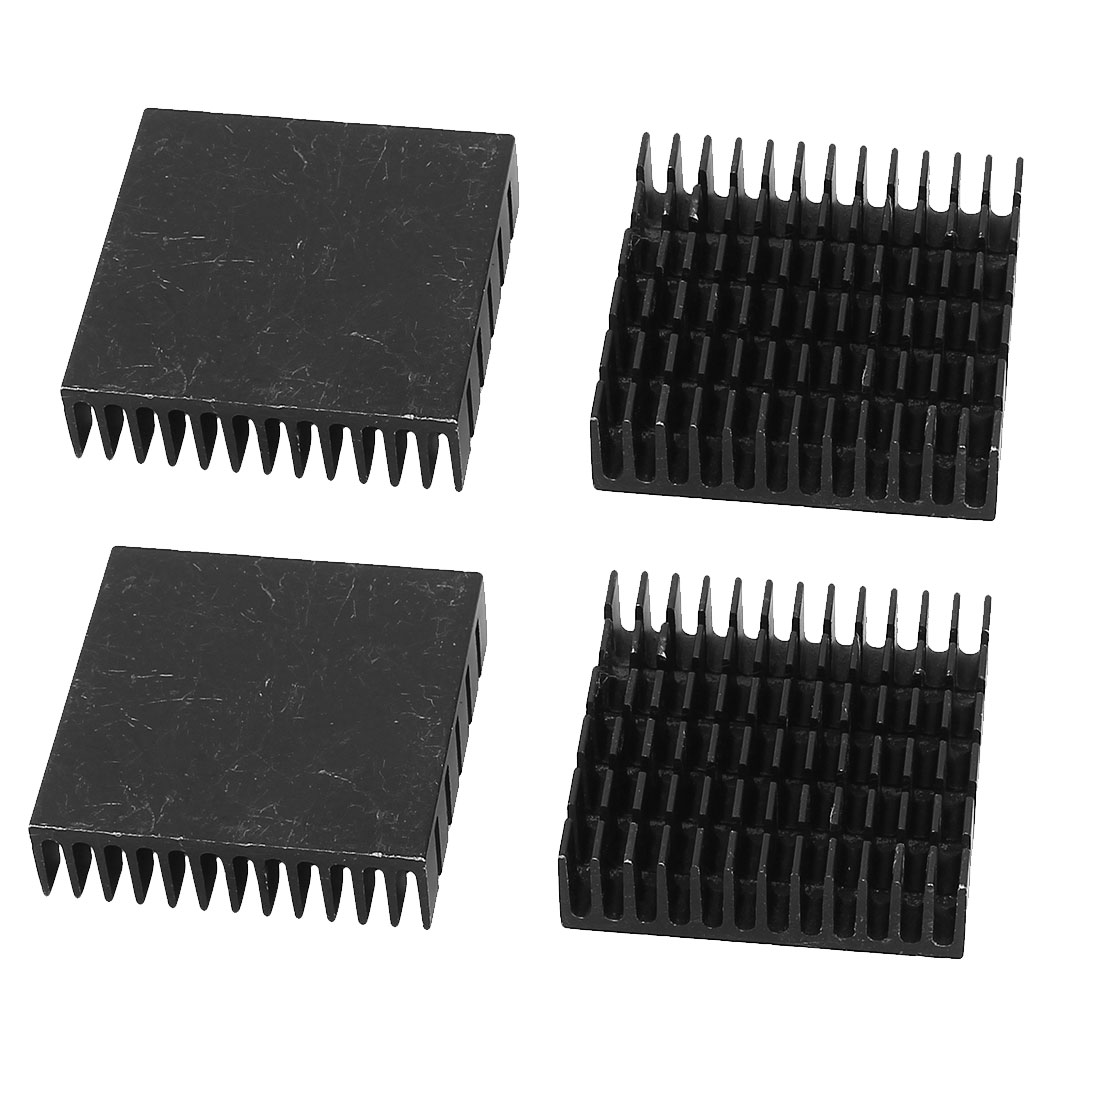 Aluminum Heatsink Radiator Heat Sink Cooling Cooler Fin Black 40mm x 40mm x 11mm 4 Pcs